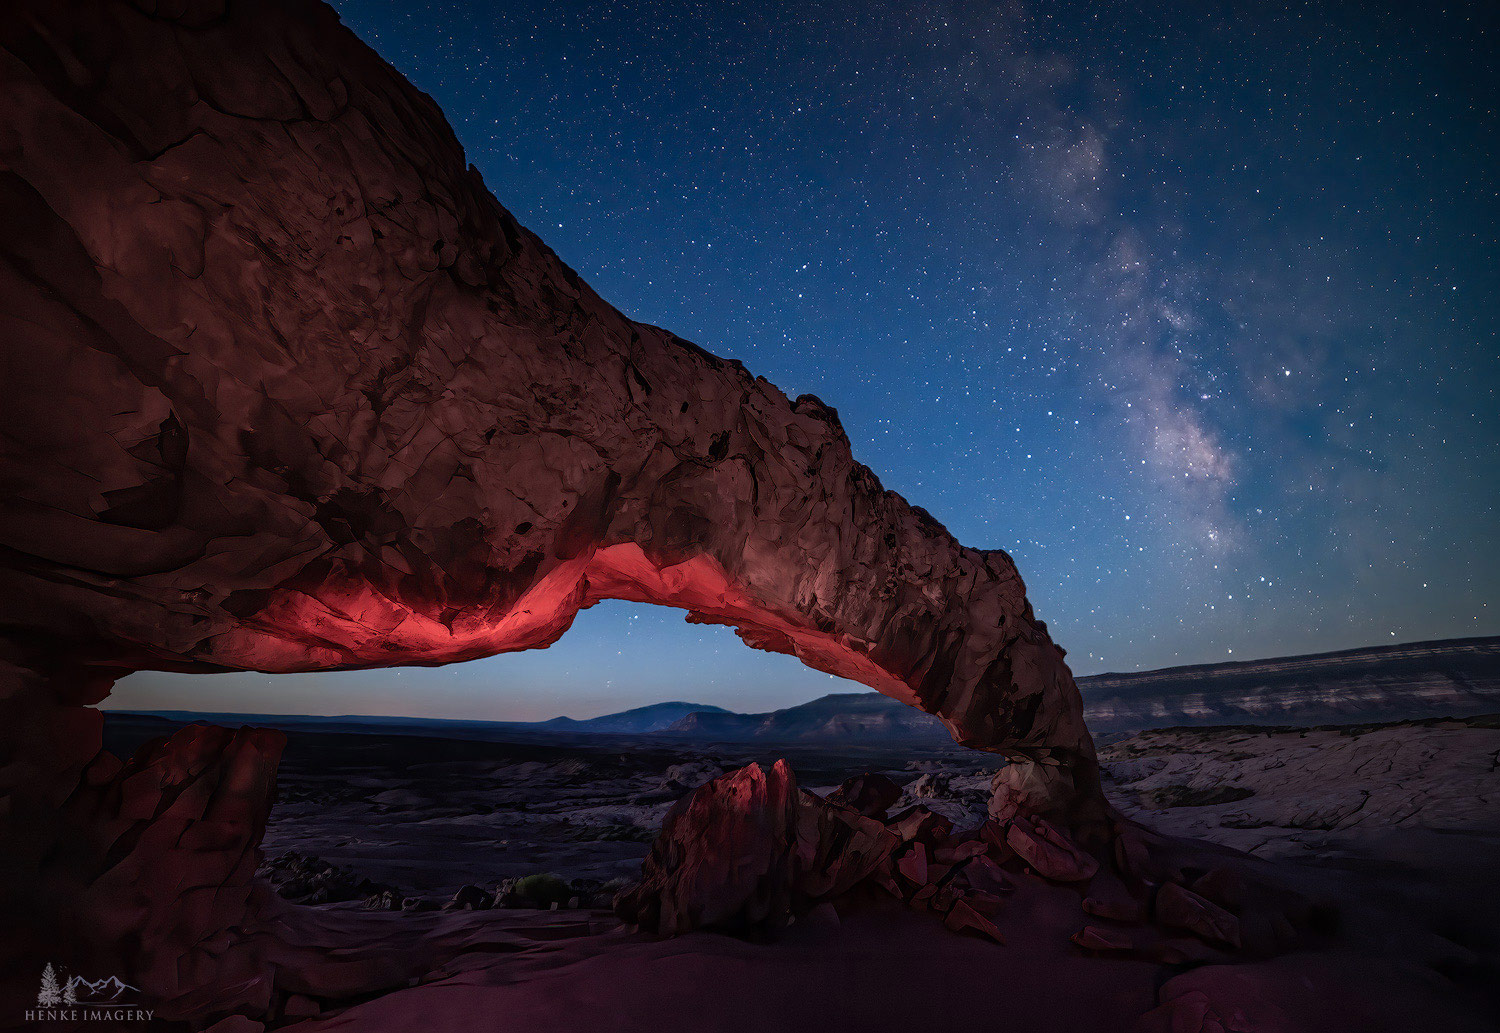 Arch, monument, sunset, Milky Way, desert, photo